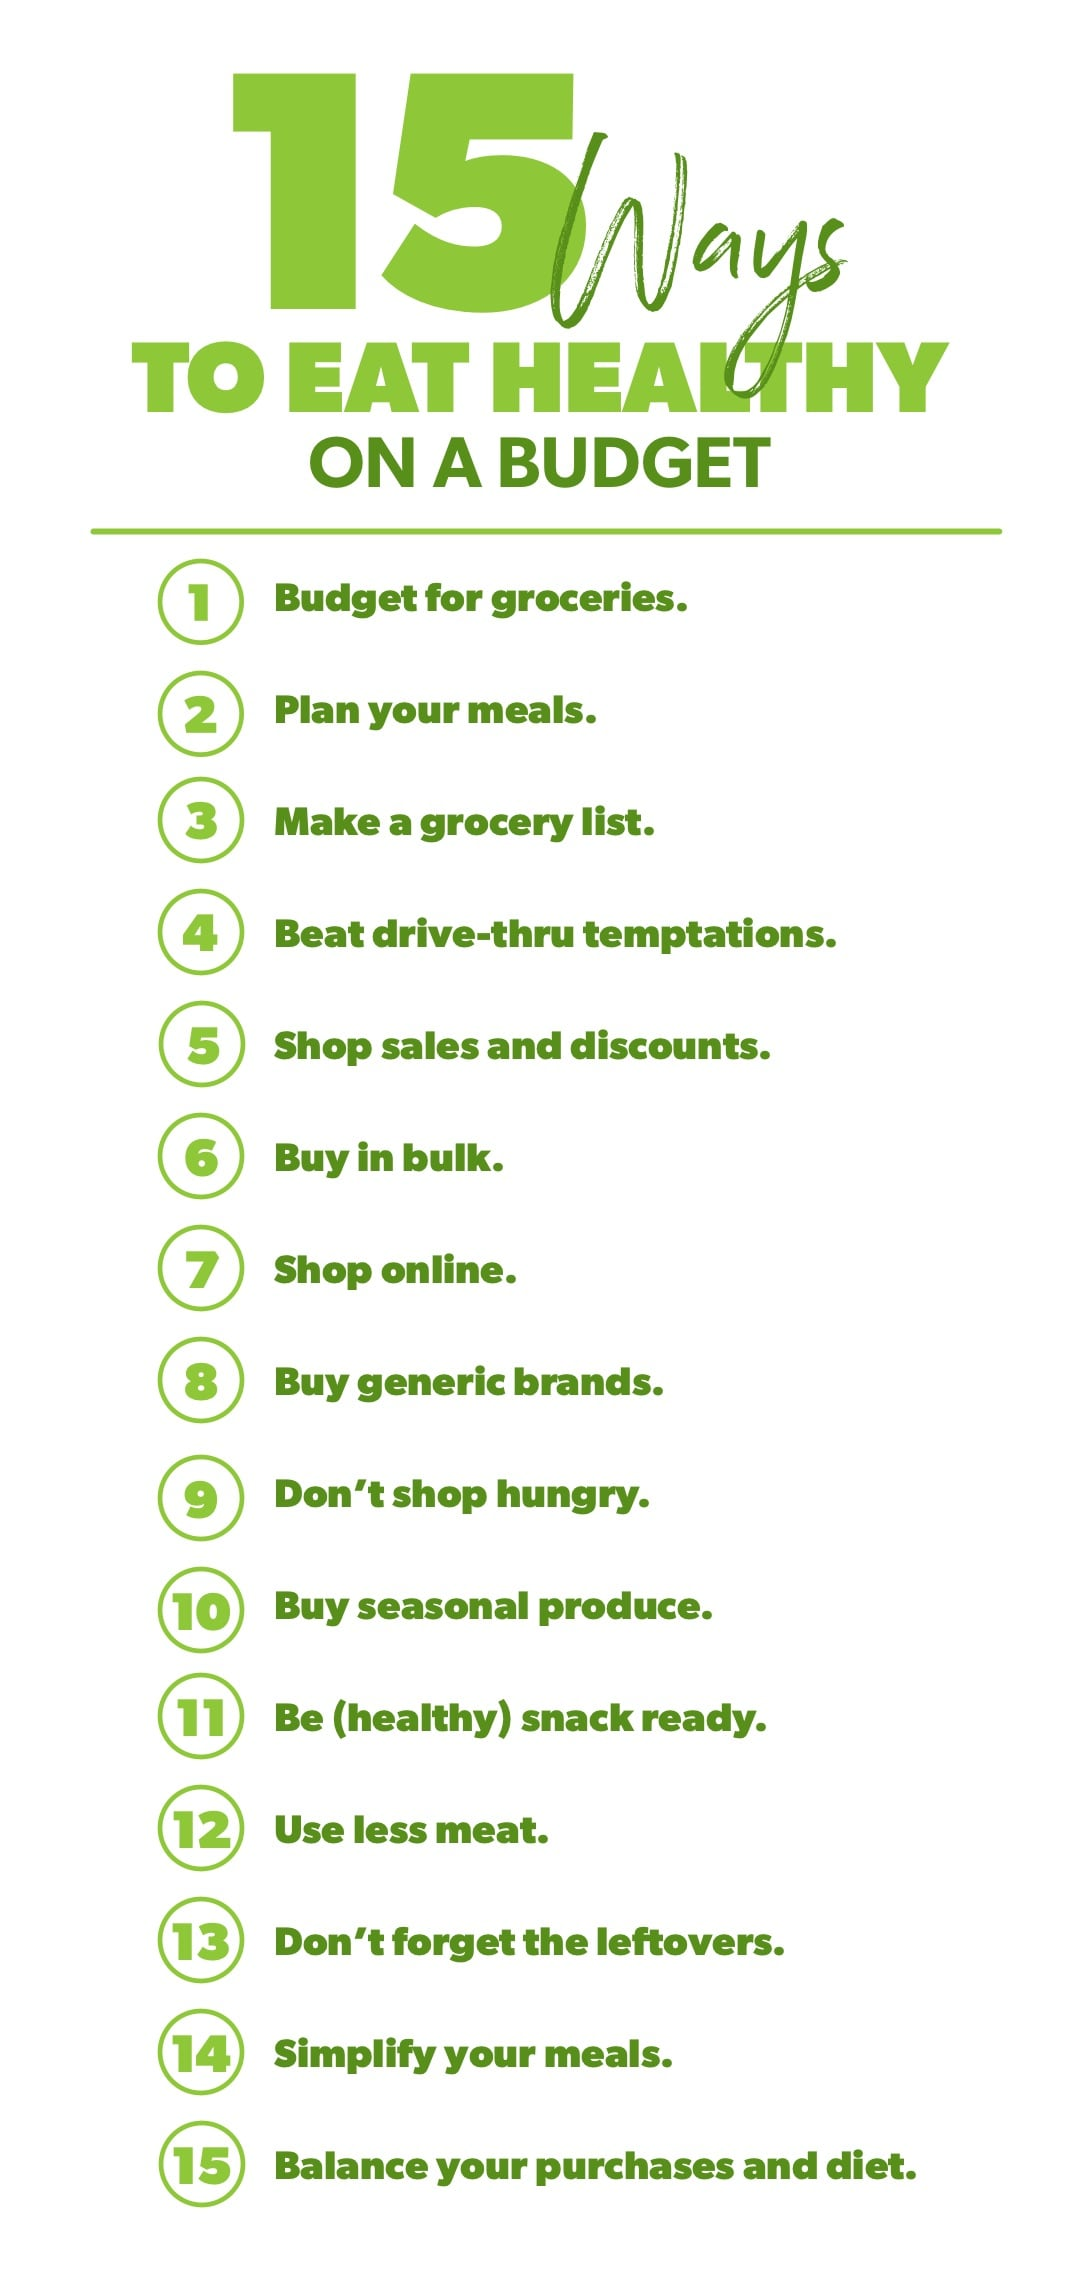 15 Ways to Eat Healthy on a Budget Chart: 1. Budget for groceries. 2. Plan your meals. 3. Make a grocery list. 4. Beat drive-thru temptations. 5. Shop sales and discounts. 6. Buy in bulk. 7. Shop online. 8. Buy generic brands. 9. Don't shop hungry. 10. Buy seasonal produce. 11. Be (healthy) snack ready. 12. Use less meat. 13. Don't forget the leftovers. 14. Simplify your meals. 15. Balance your purchases and diet.